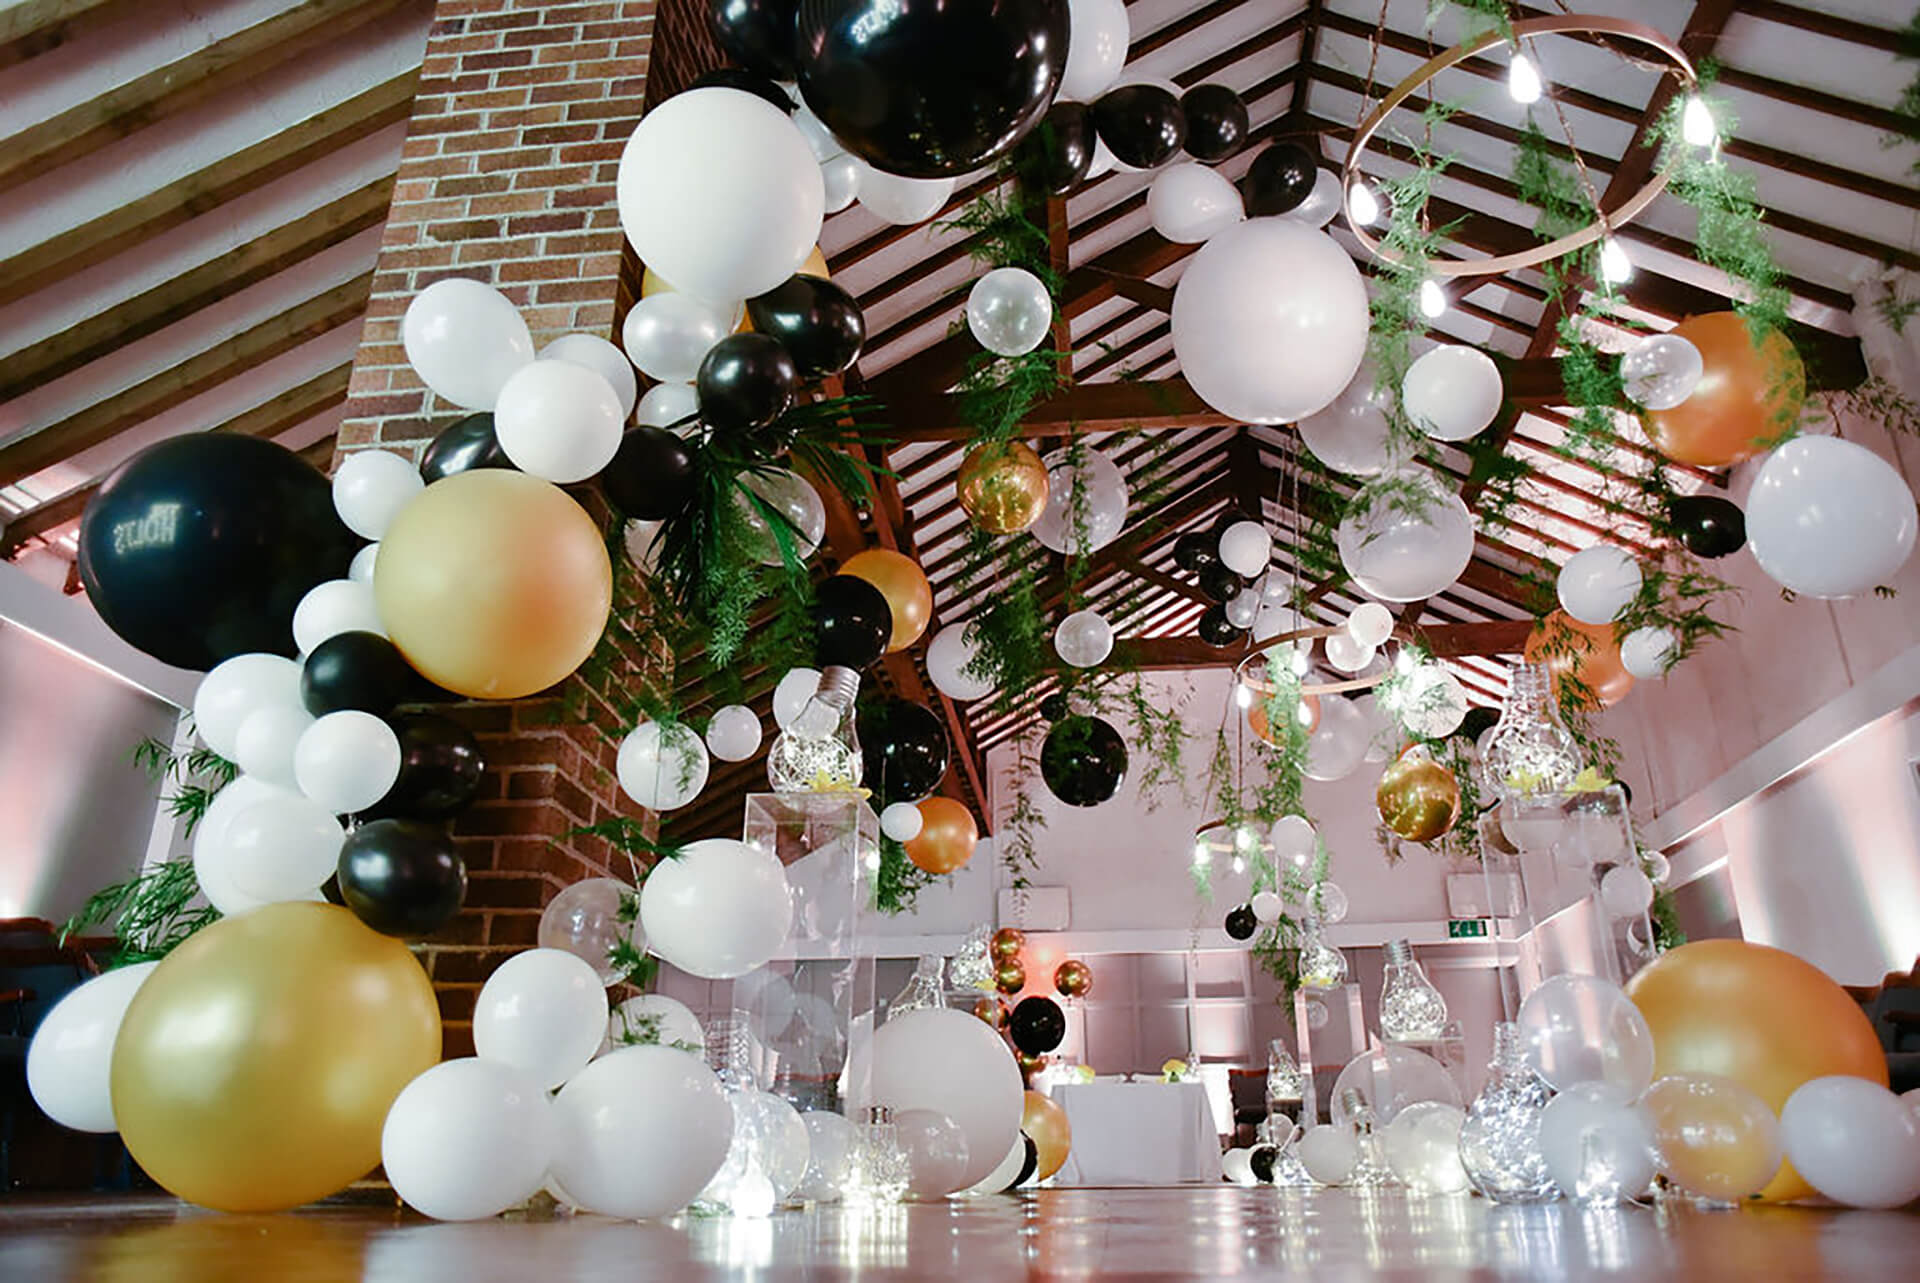 Wedding balloons in the ceremony room